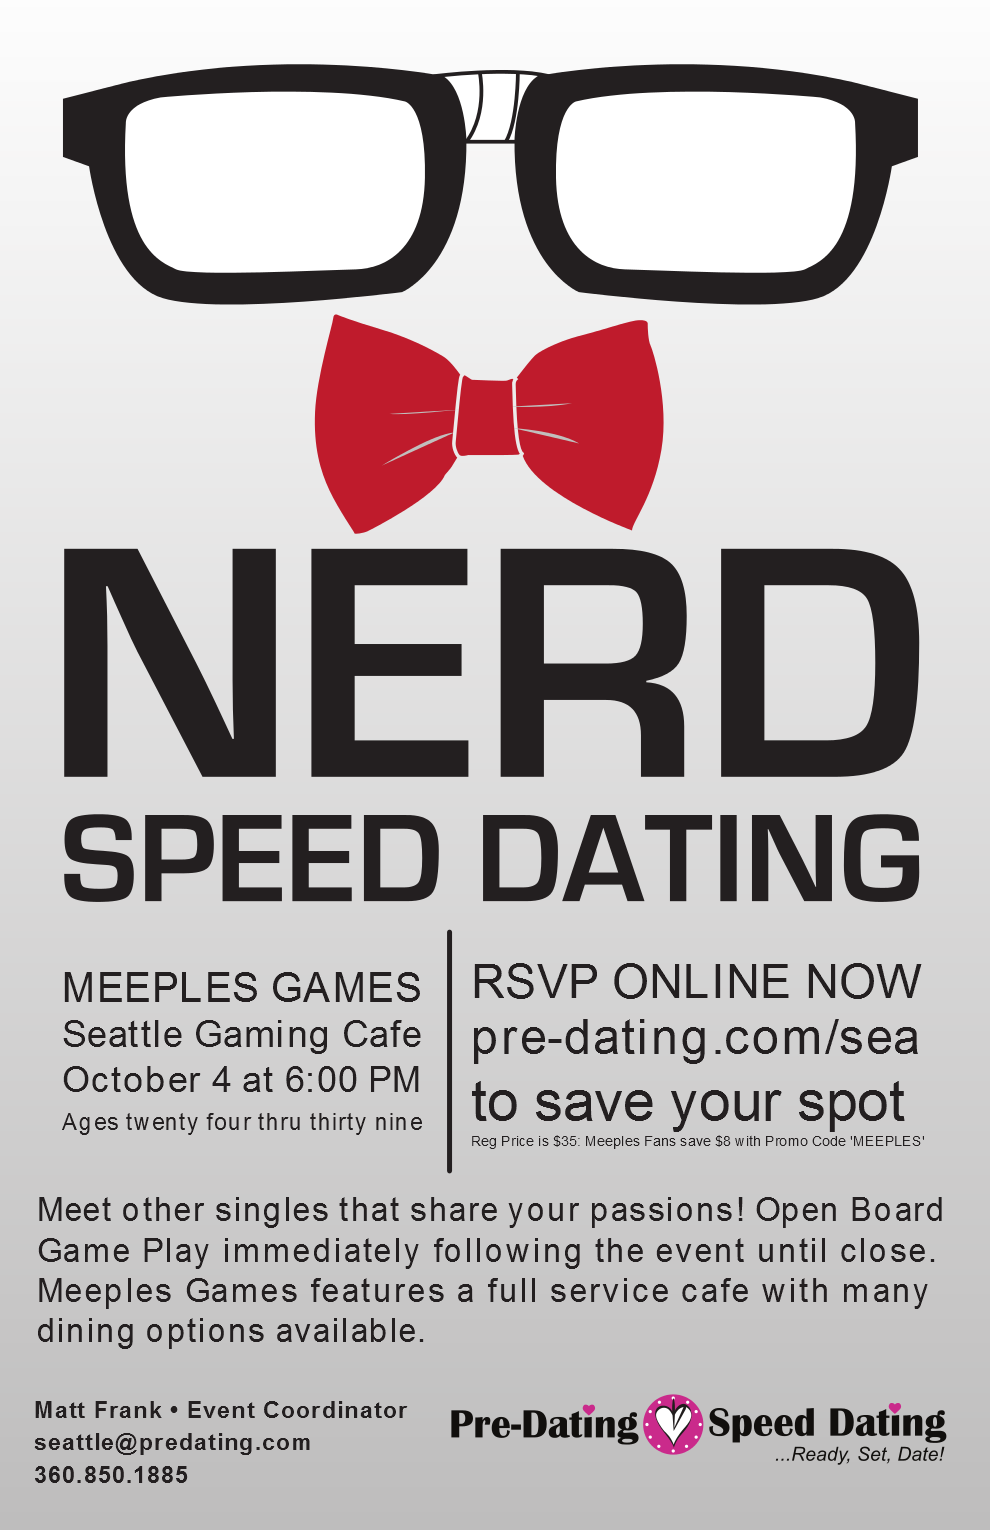 Best free dating site for nerds